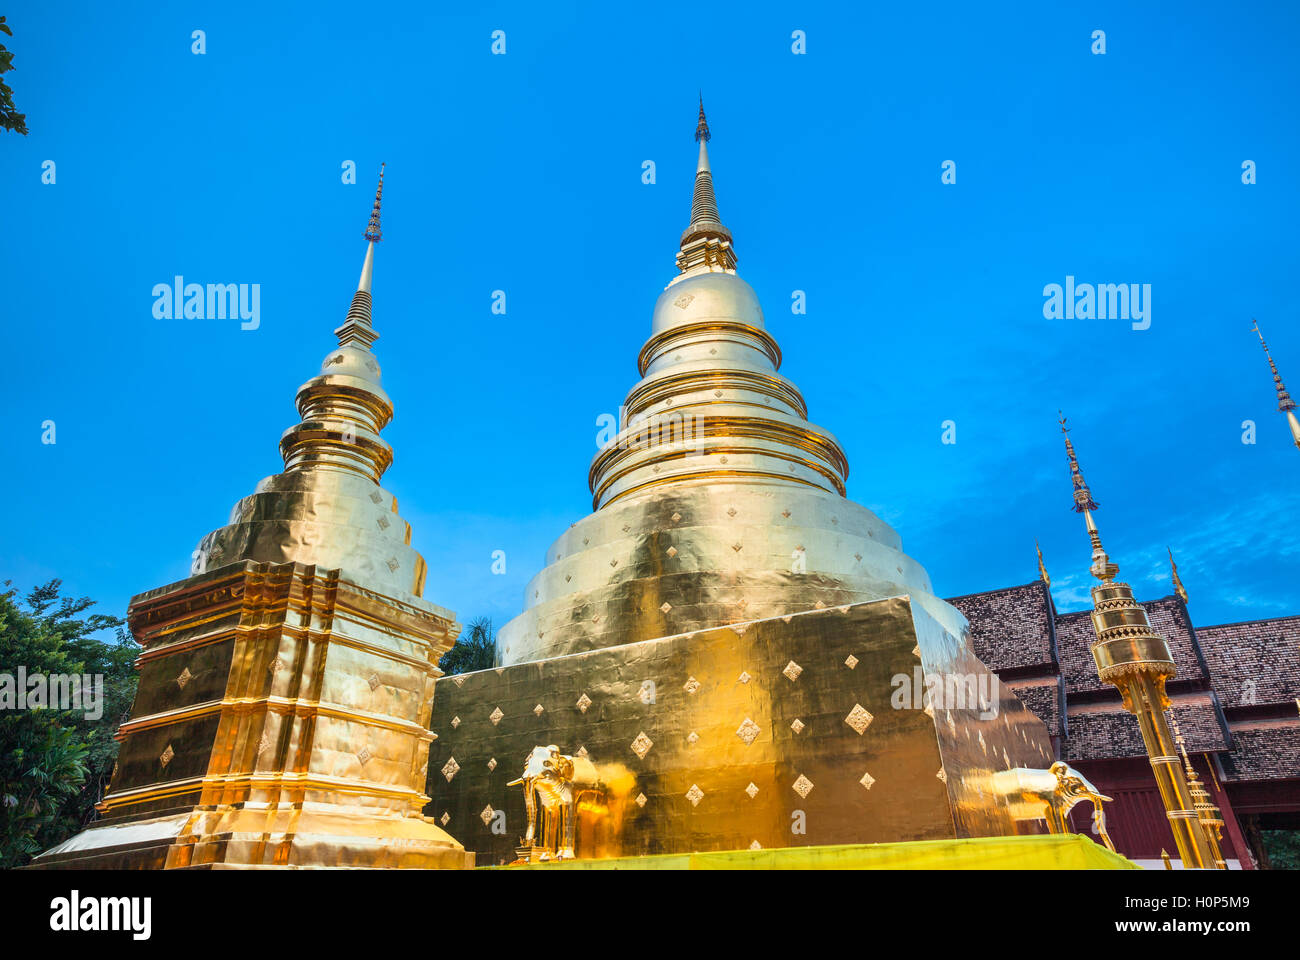 Dusk View of the golden stupa of Wat Phra Singh temple, the most revered temple in Chiang Mai, Thailand. - Stock Image